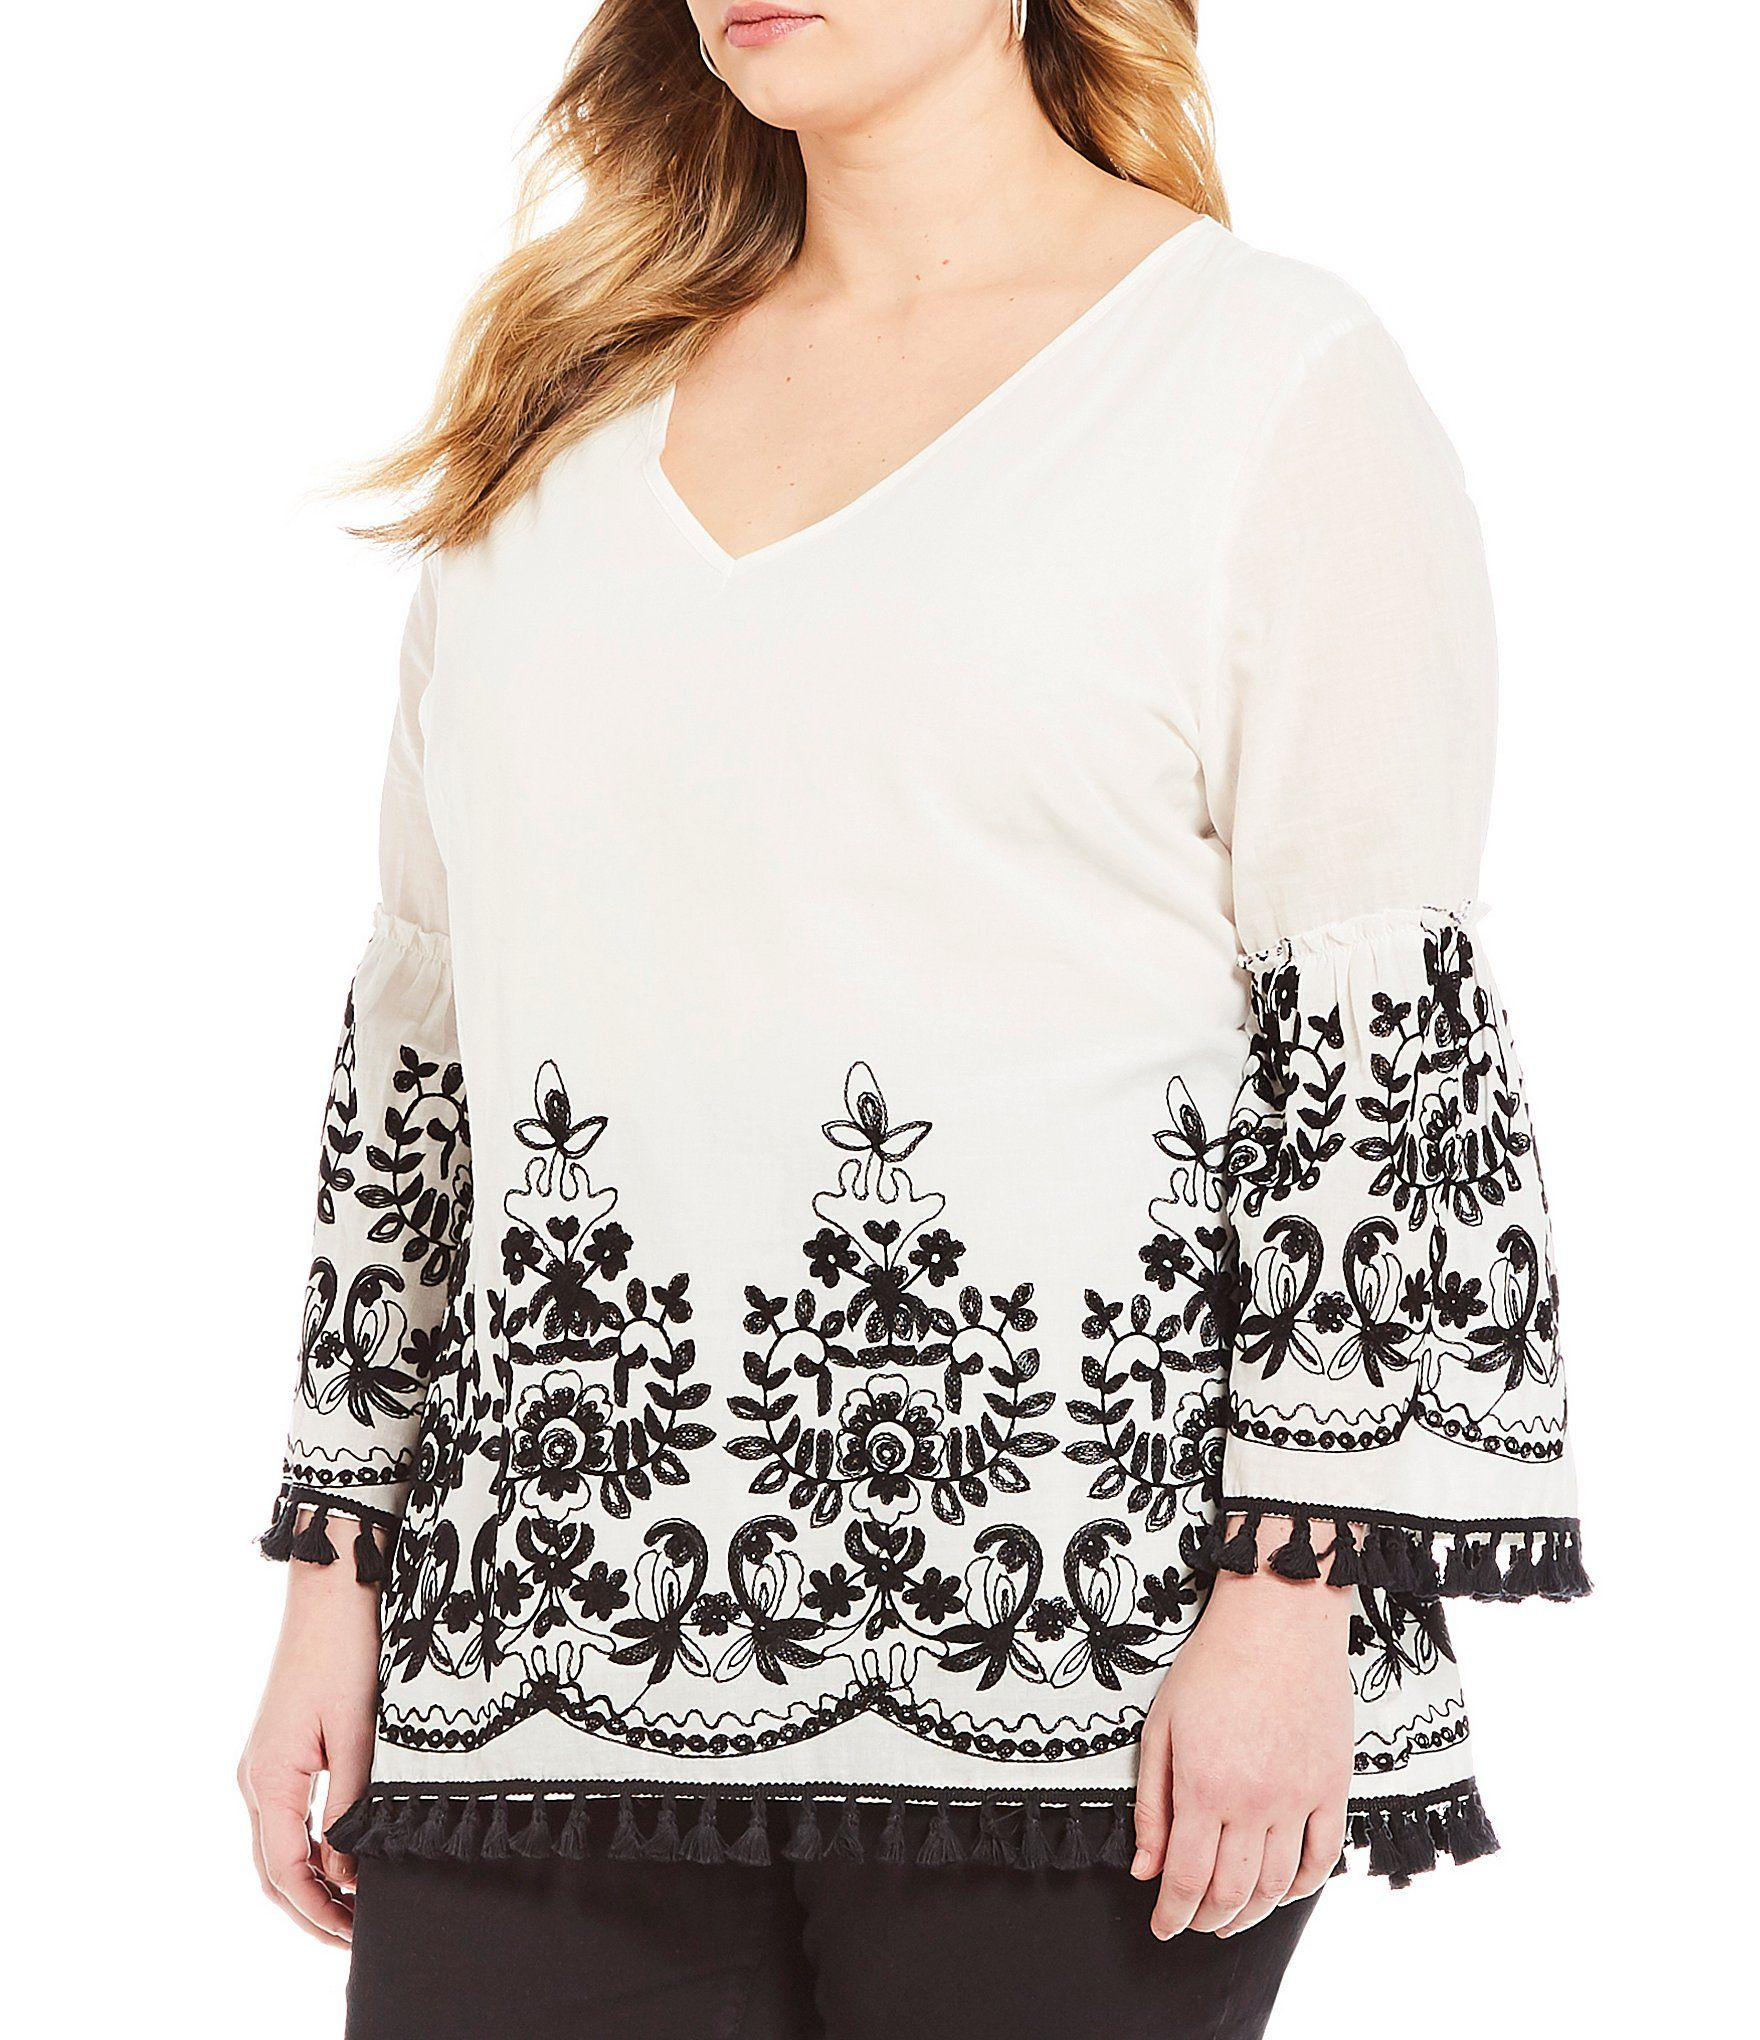 51ff4235c4d2c8 Calessa Plus 34 Bell Sleeve Embroidered Blouse #Dillards | Wedding ...